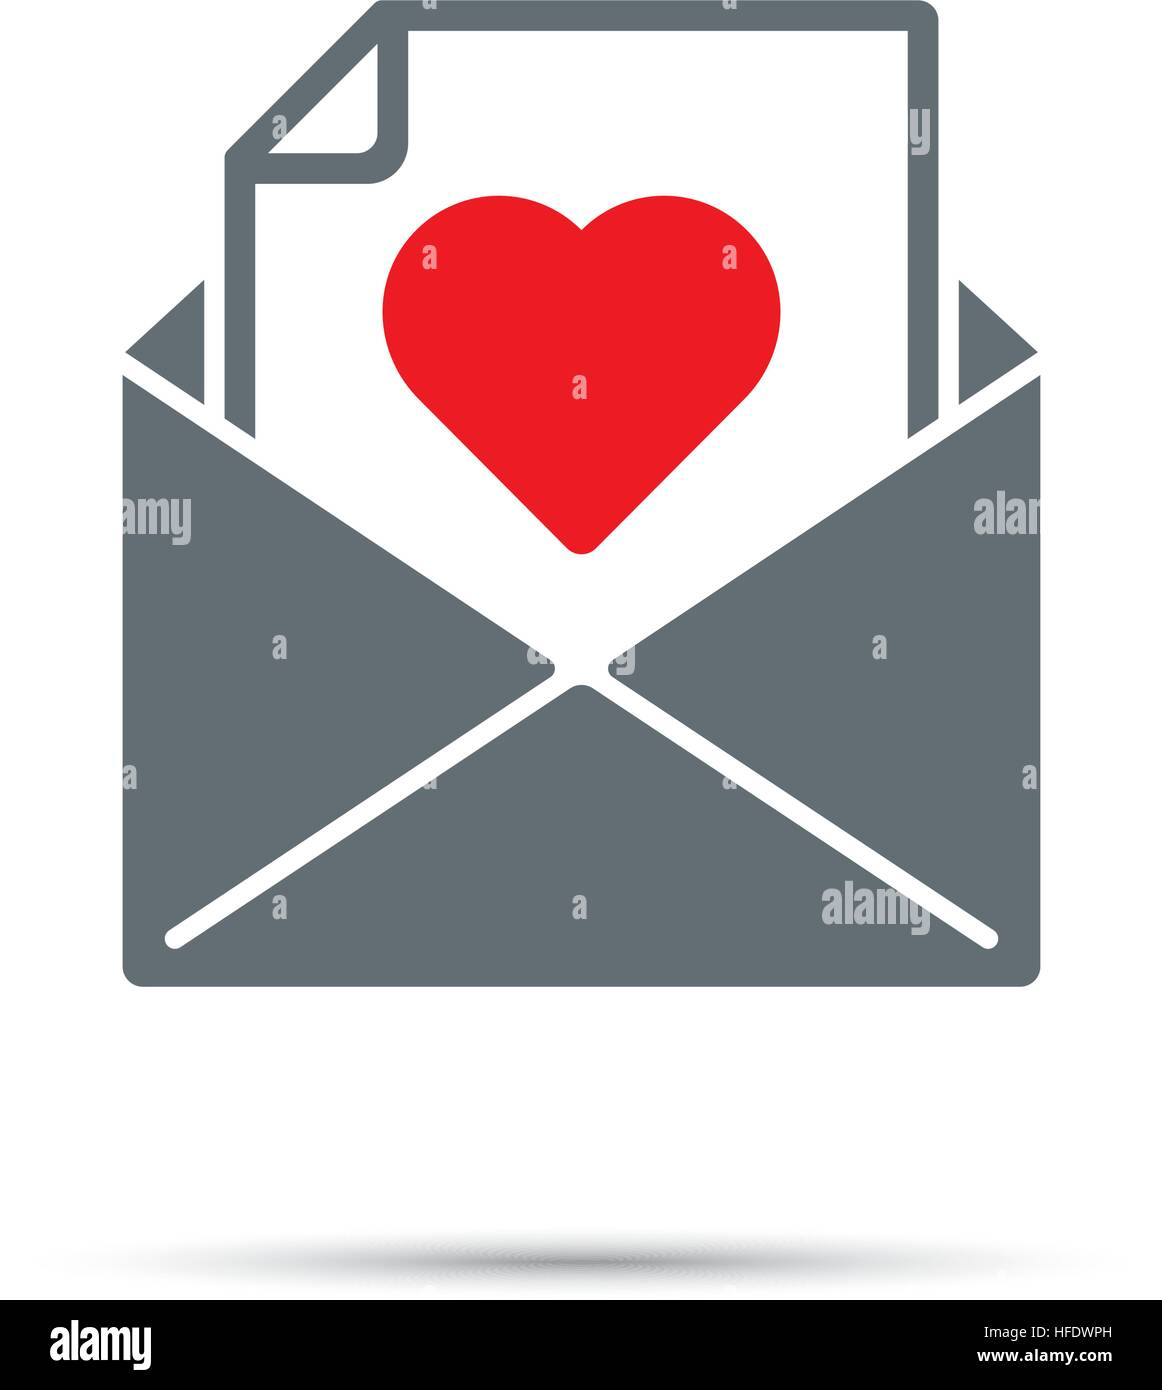 Love Letter In An Envelope Stock Photos & Love Letter In An Envelope ...